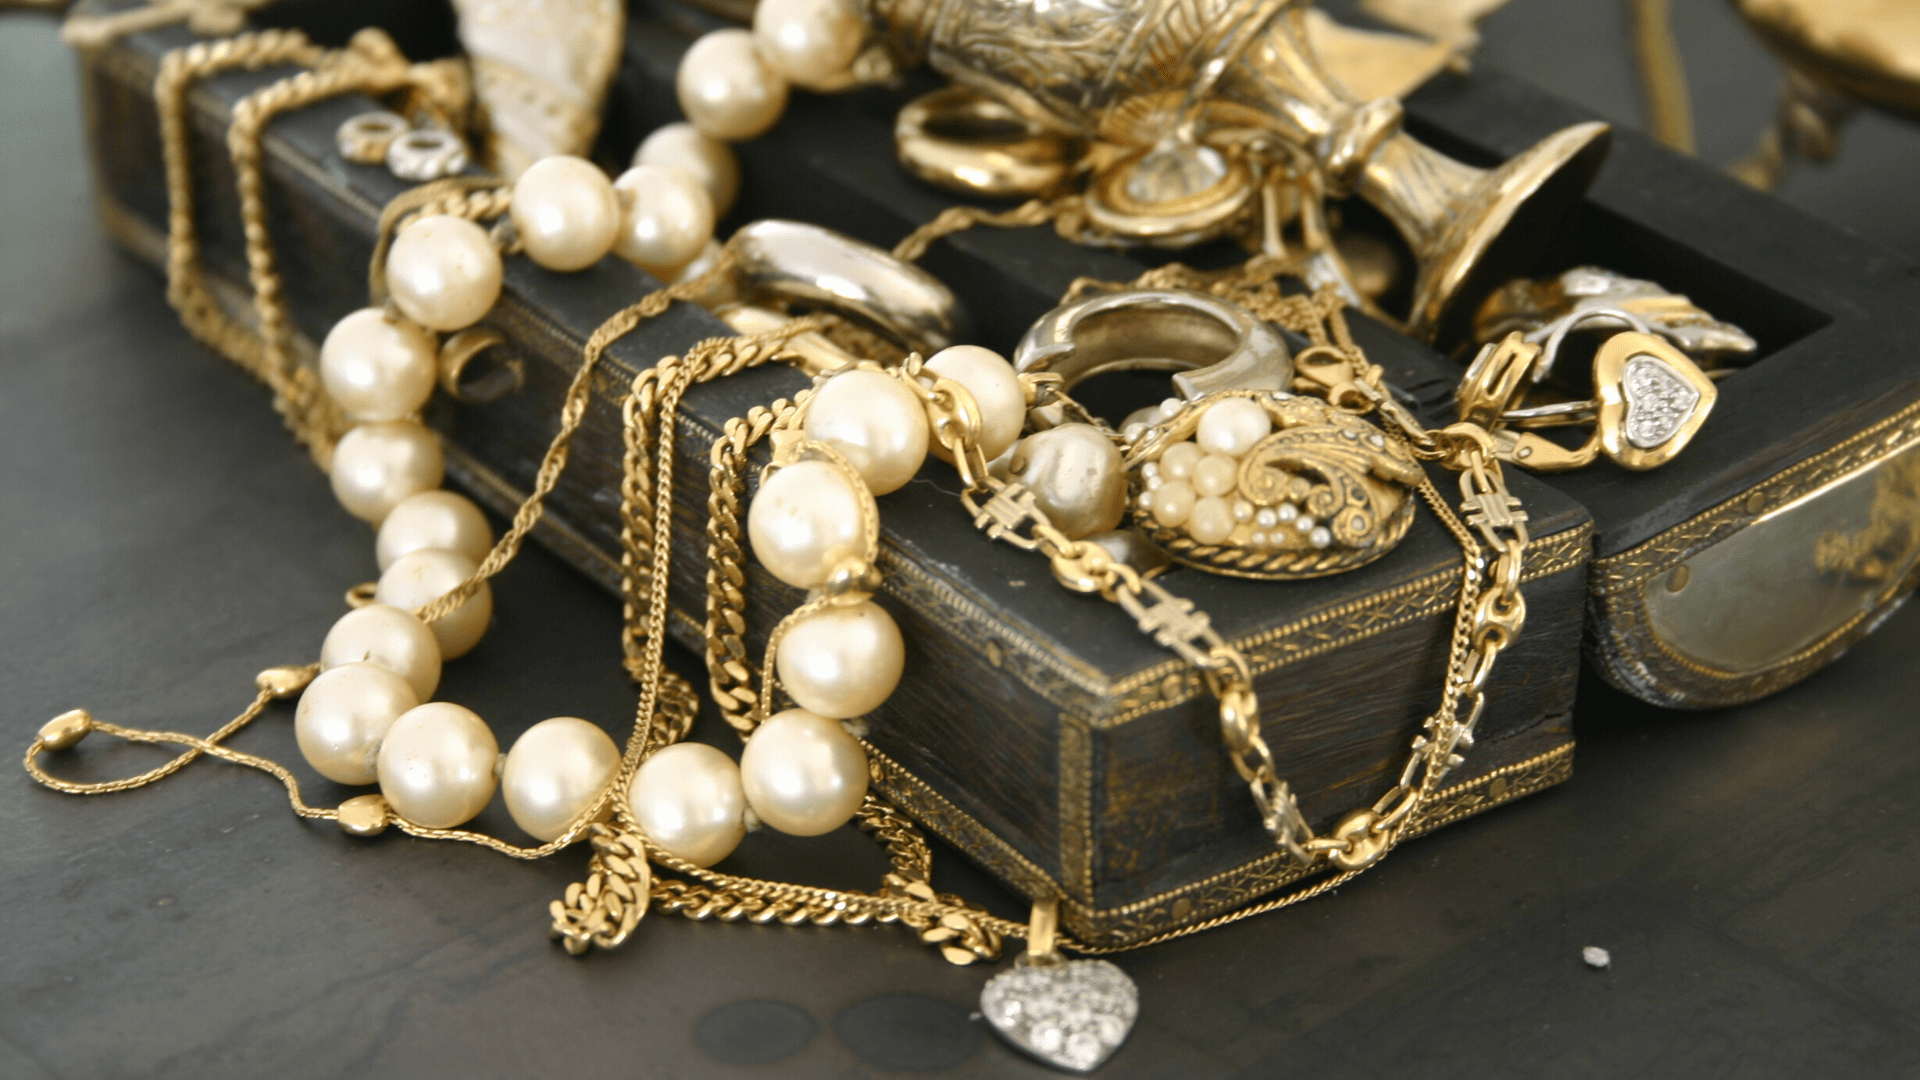 Jewelry Care in Mérida: 8 Easy Tips